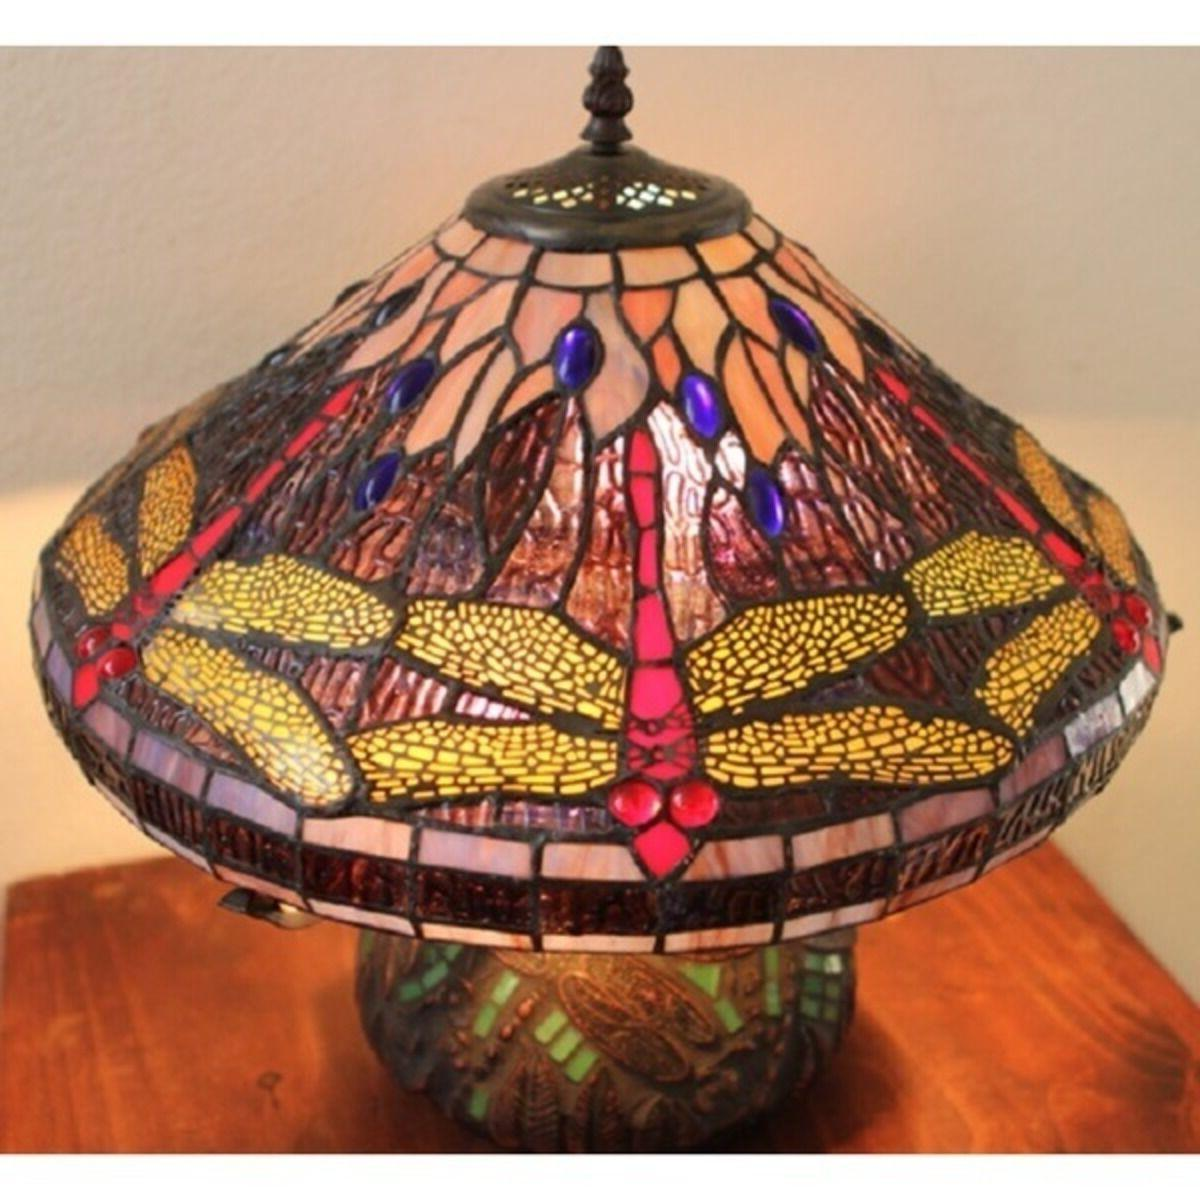 Tiffany Dragonfly Cut Stained Table Desk Mosaic